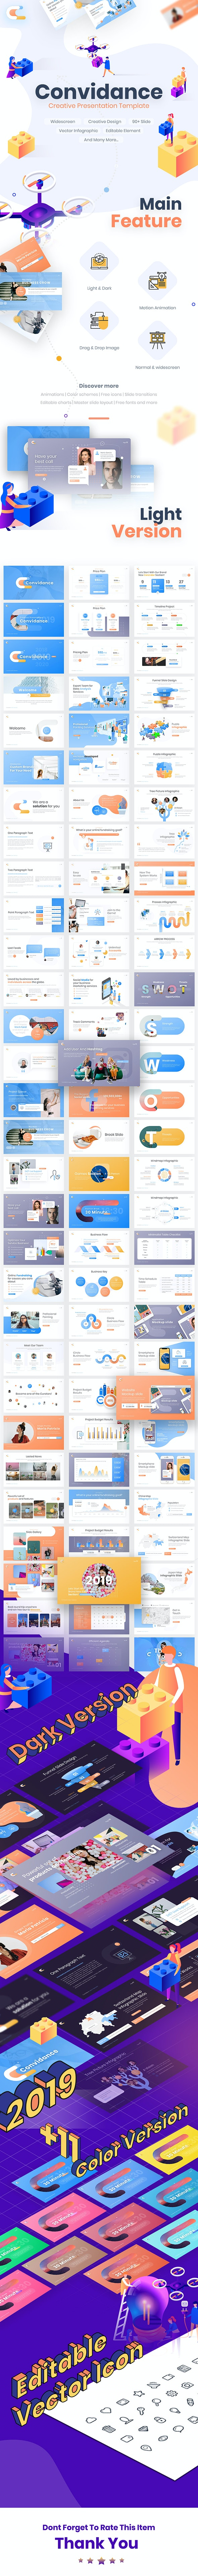 Convidance Creative PowerPoint Template - PowerPoint Templates Presentation Templates